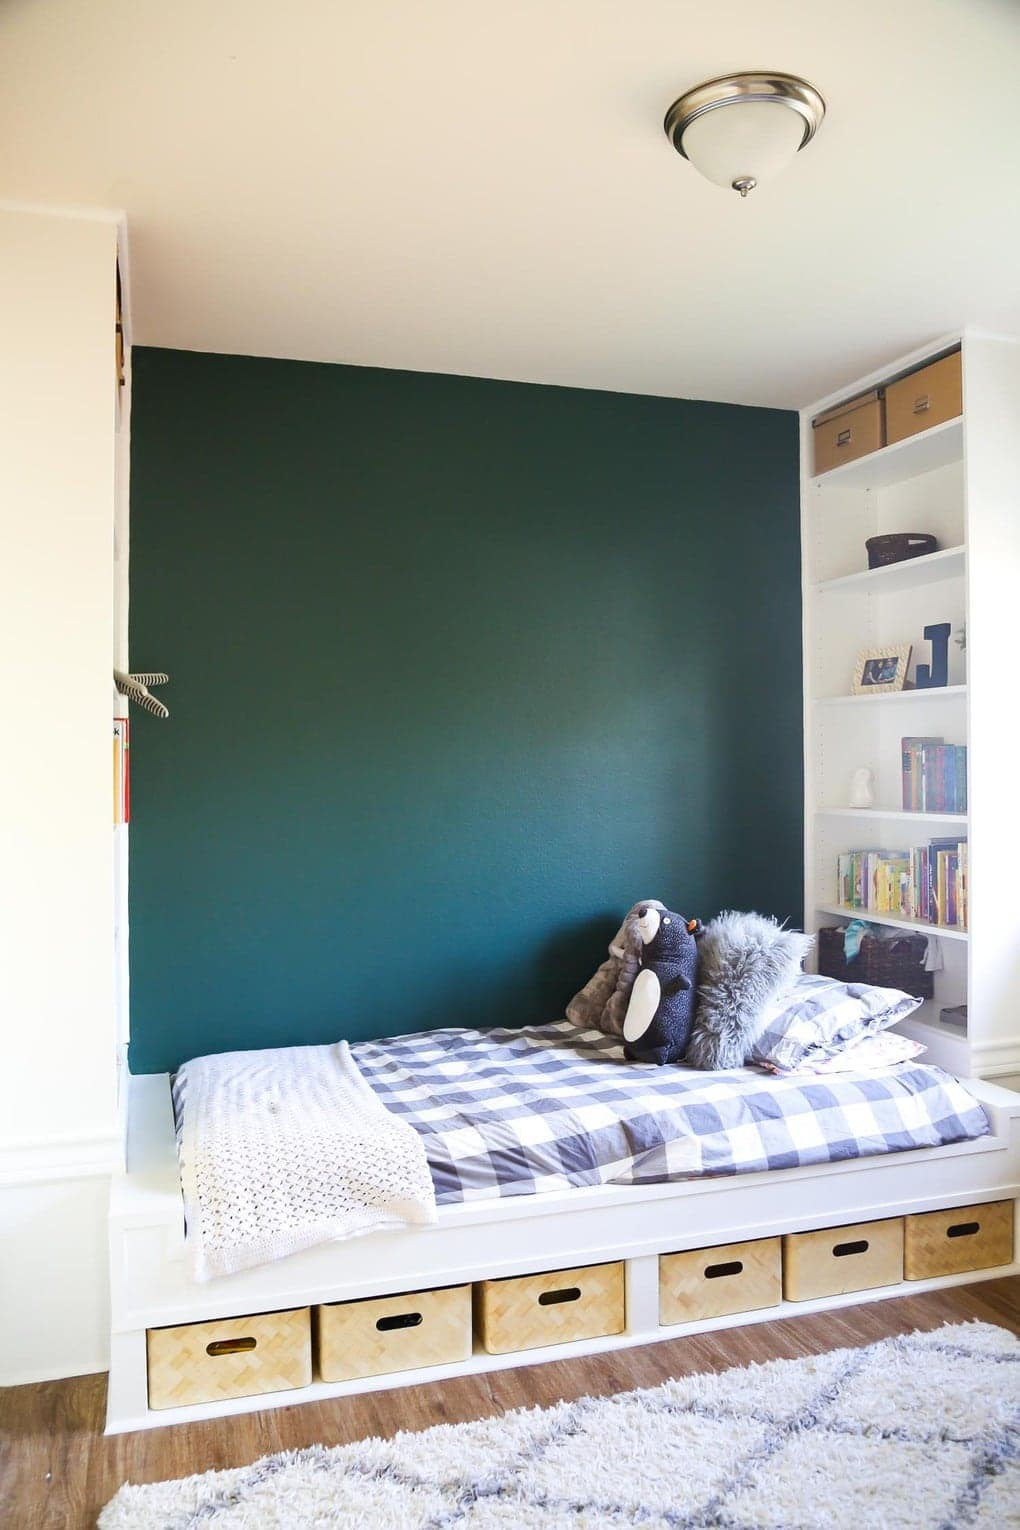 Platform bed with floor-to-ceiling bookcases and a green accent wall